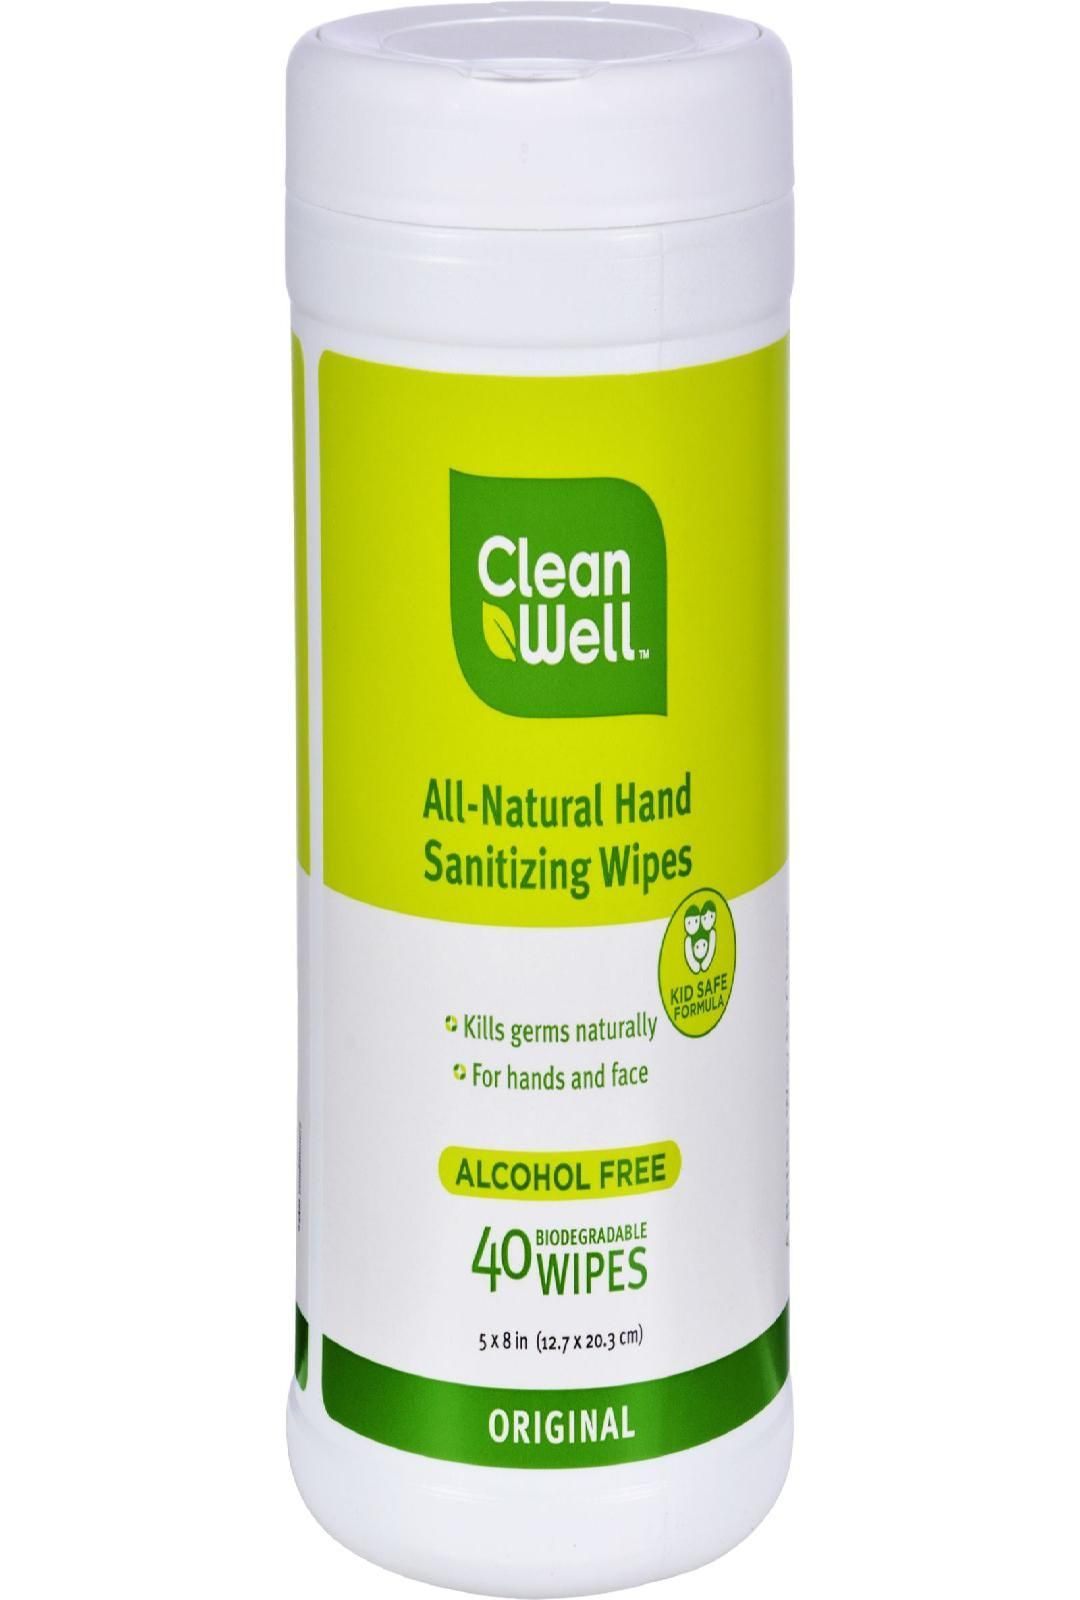 Cleanwell All Natural Hand Sanitizing Wipes Original 40 Wipes